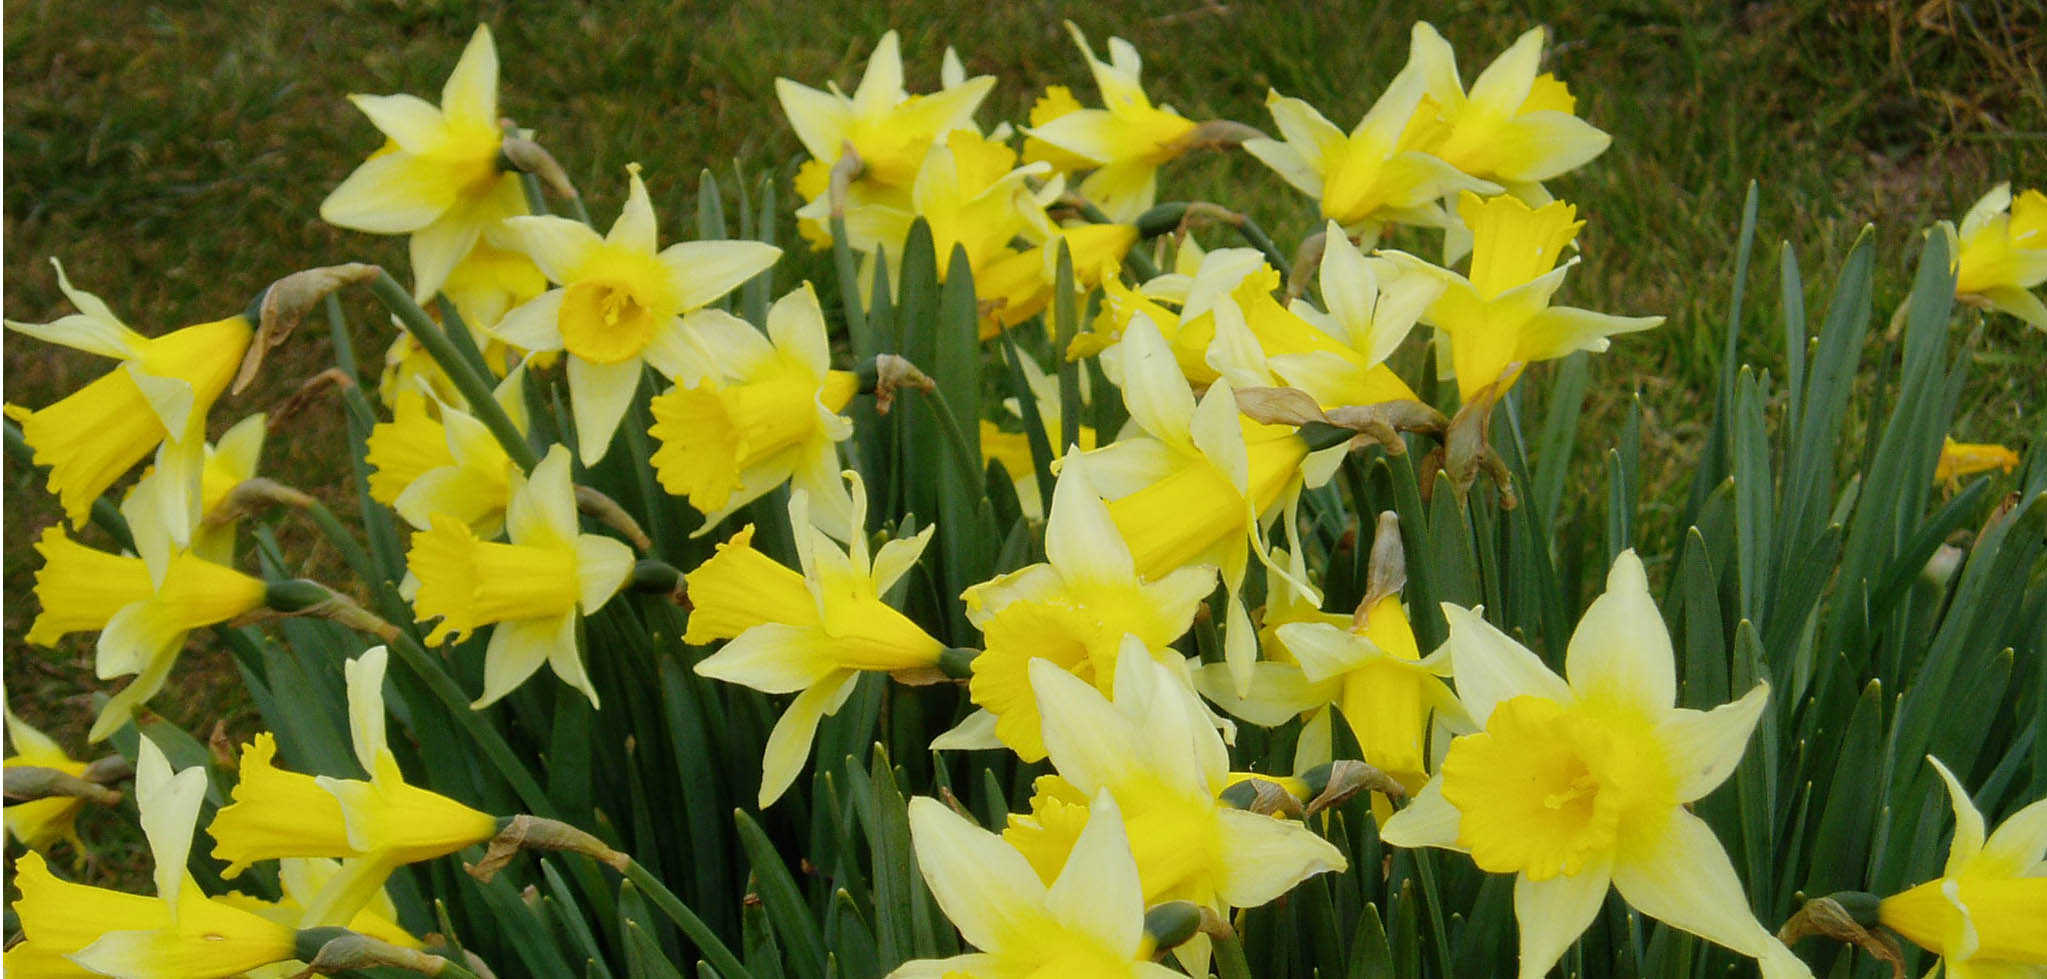 Cenhinen Pedr Peter S Leek The Welsh Daffodil The